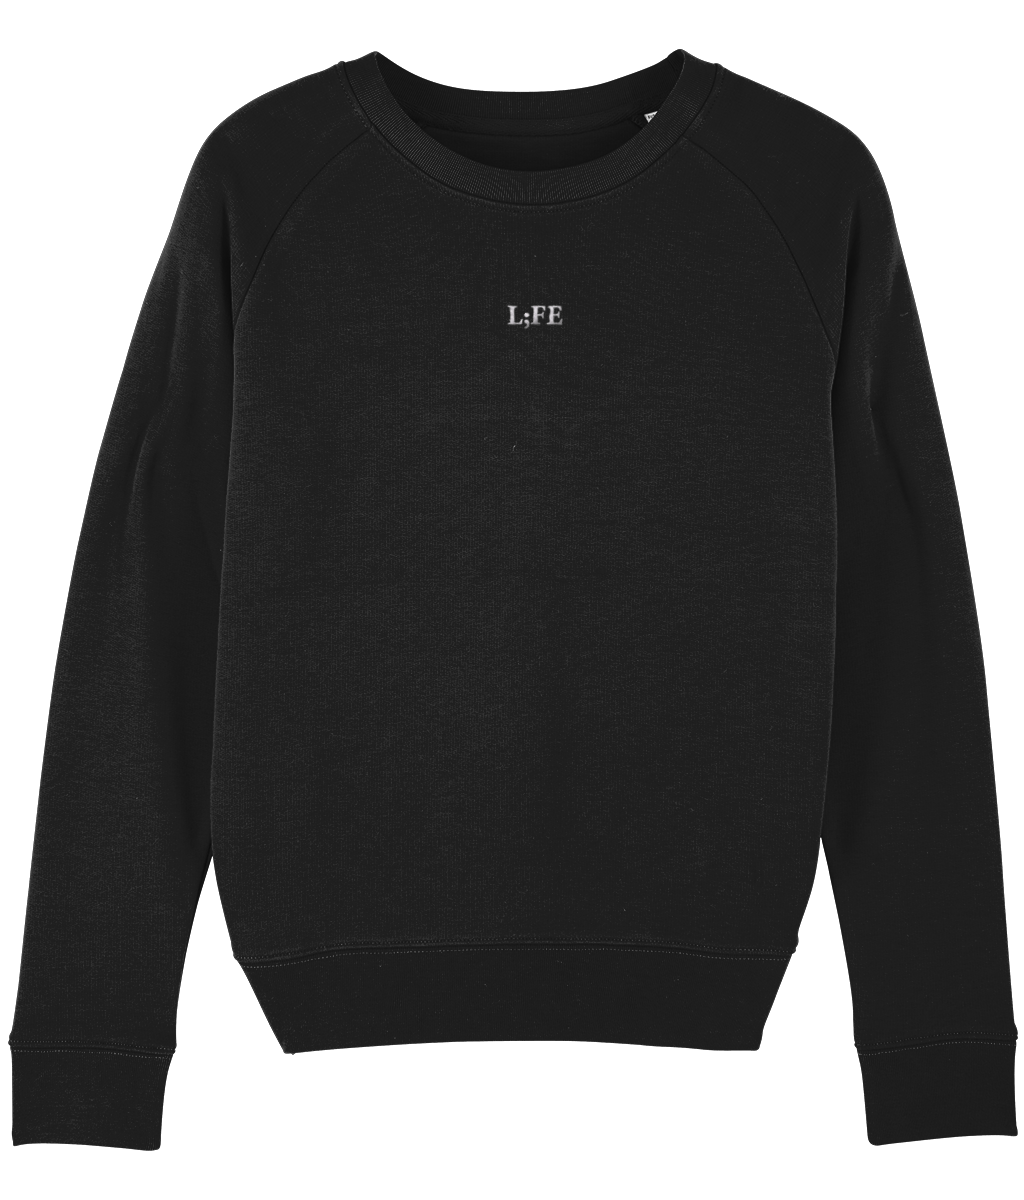 L;FE's Embroidered Womens Sweatshirt